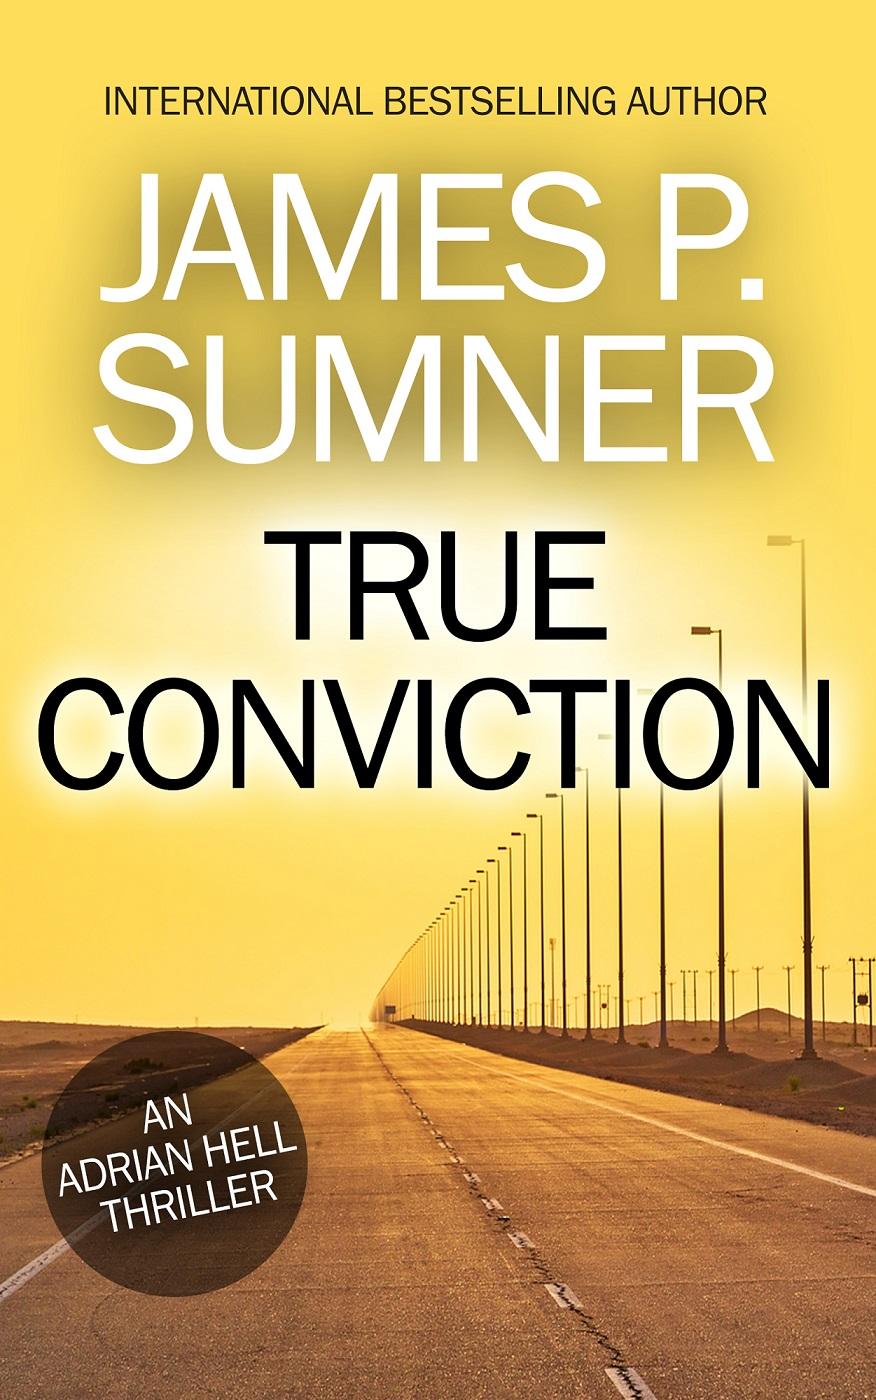 Cover - Kindle - True Conviction.jpg